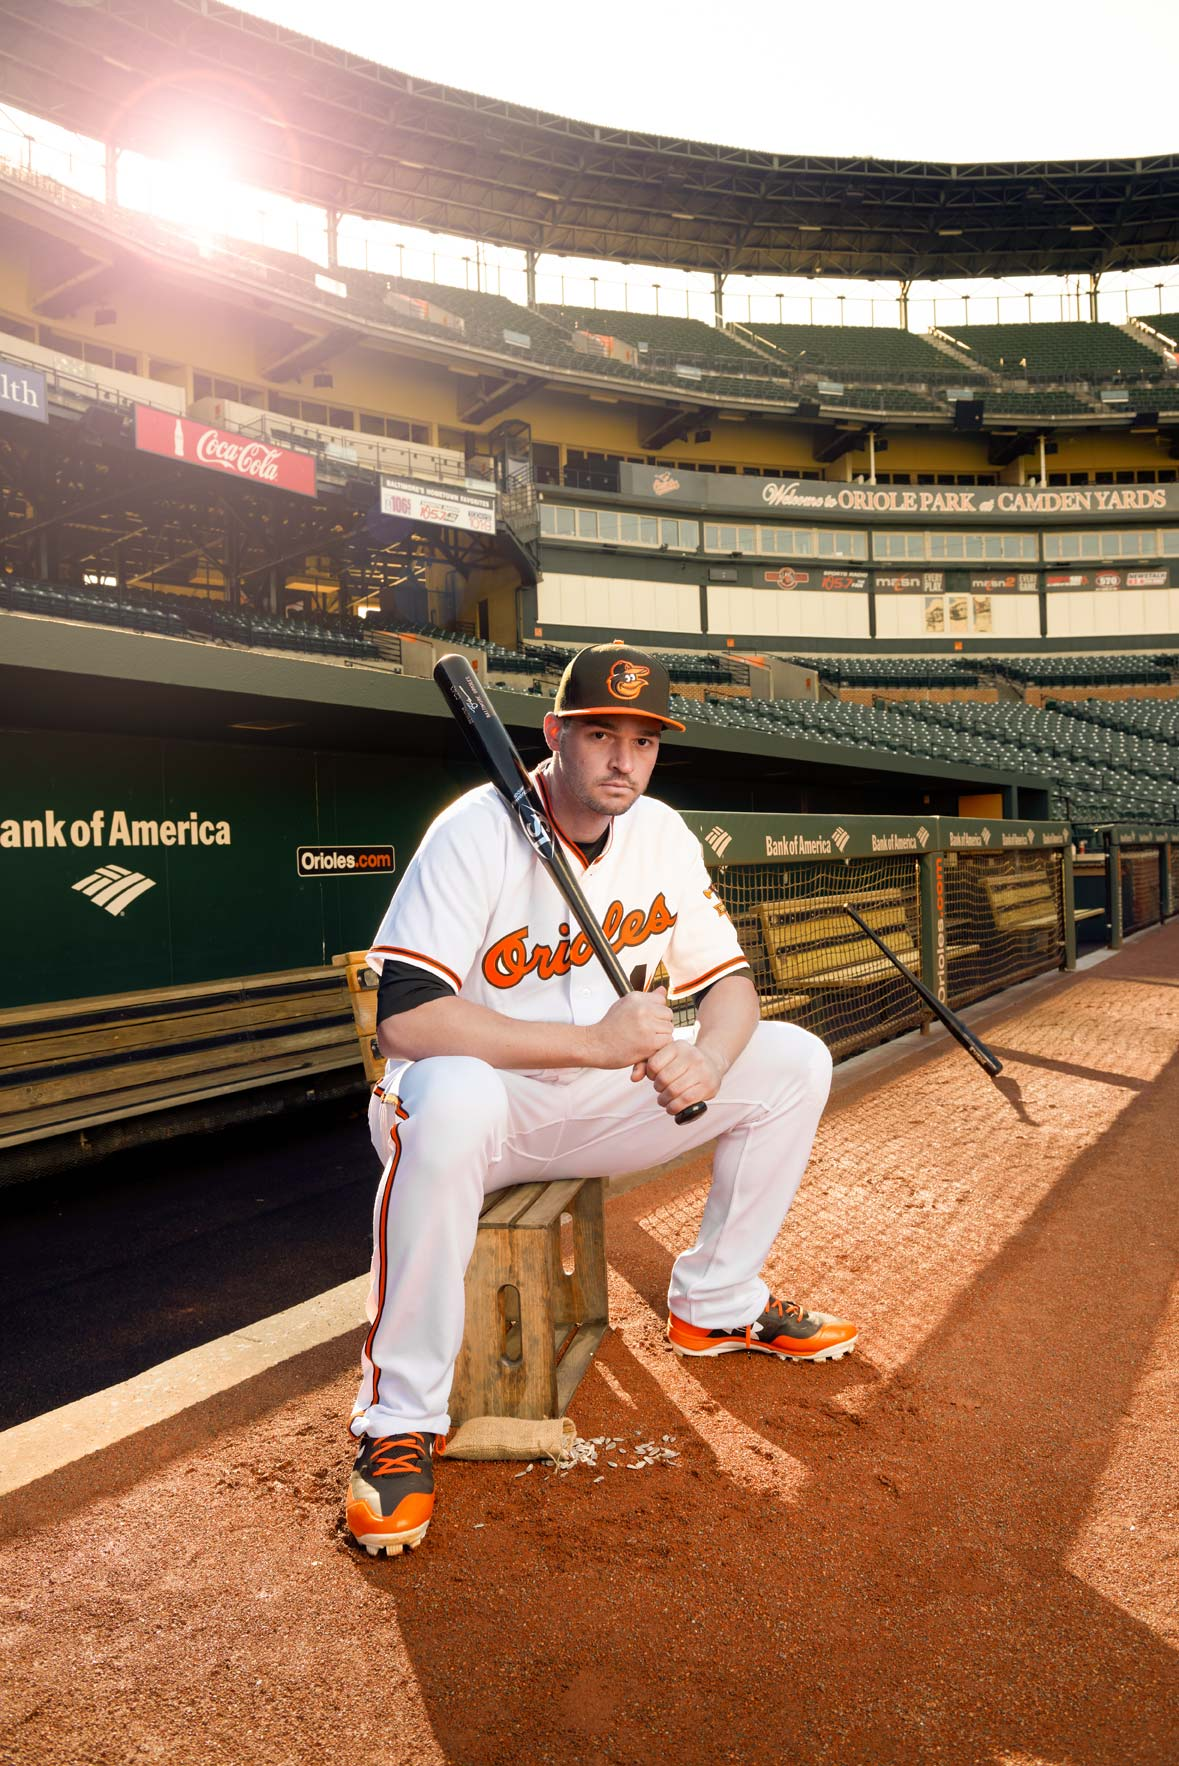 Baltimore Orioles player Trey Mancini, photographed for Baltimore Magazine